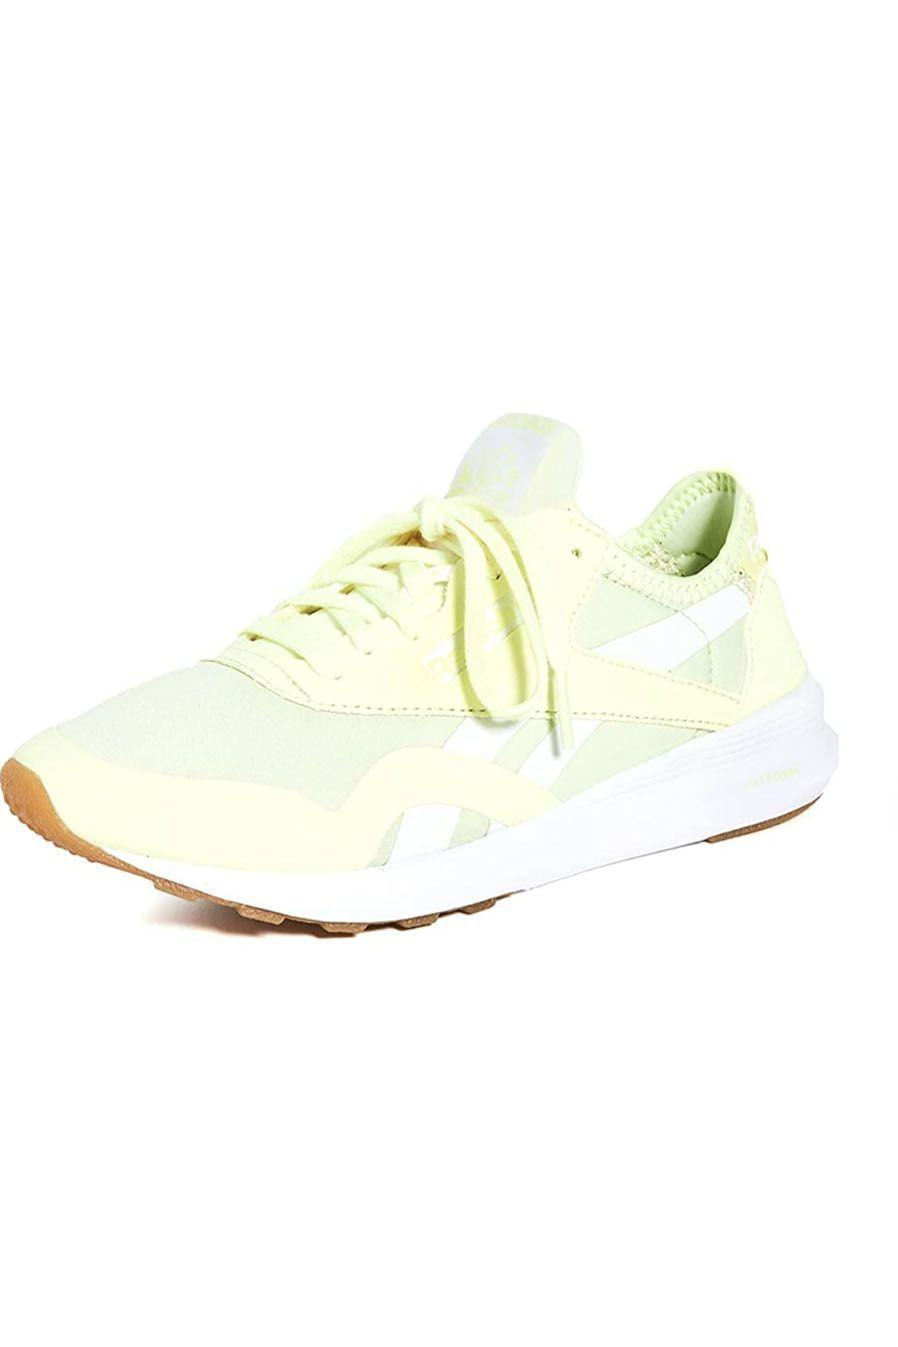 """<p><strong>Reebok</strong></p><p>amazon.com</p><p><strong>75.00</strong></p><p><a href=""""https://www.amazon.com/dp/B093THXL3P?tag=syn-yahoo-20&ascsubtag=%5Bartid%7C10049.g.36746335%5Bsrc%7Cyahoo-us"""" rel=""""nofollow noopener"""" target=""""_blank"""" data-ylk=""""slk:Shop Now"""" class=""""link rapid-noclick-resp"""">Shop Now</a></p><p>How cute are these highlighter-hued sneakers? If you want to switch up your classic neutral kicks, consider this pair right here. </p>"""